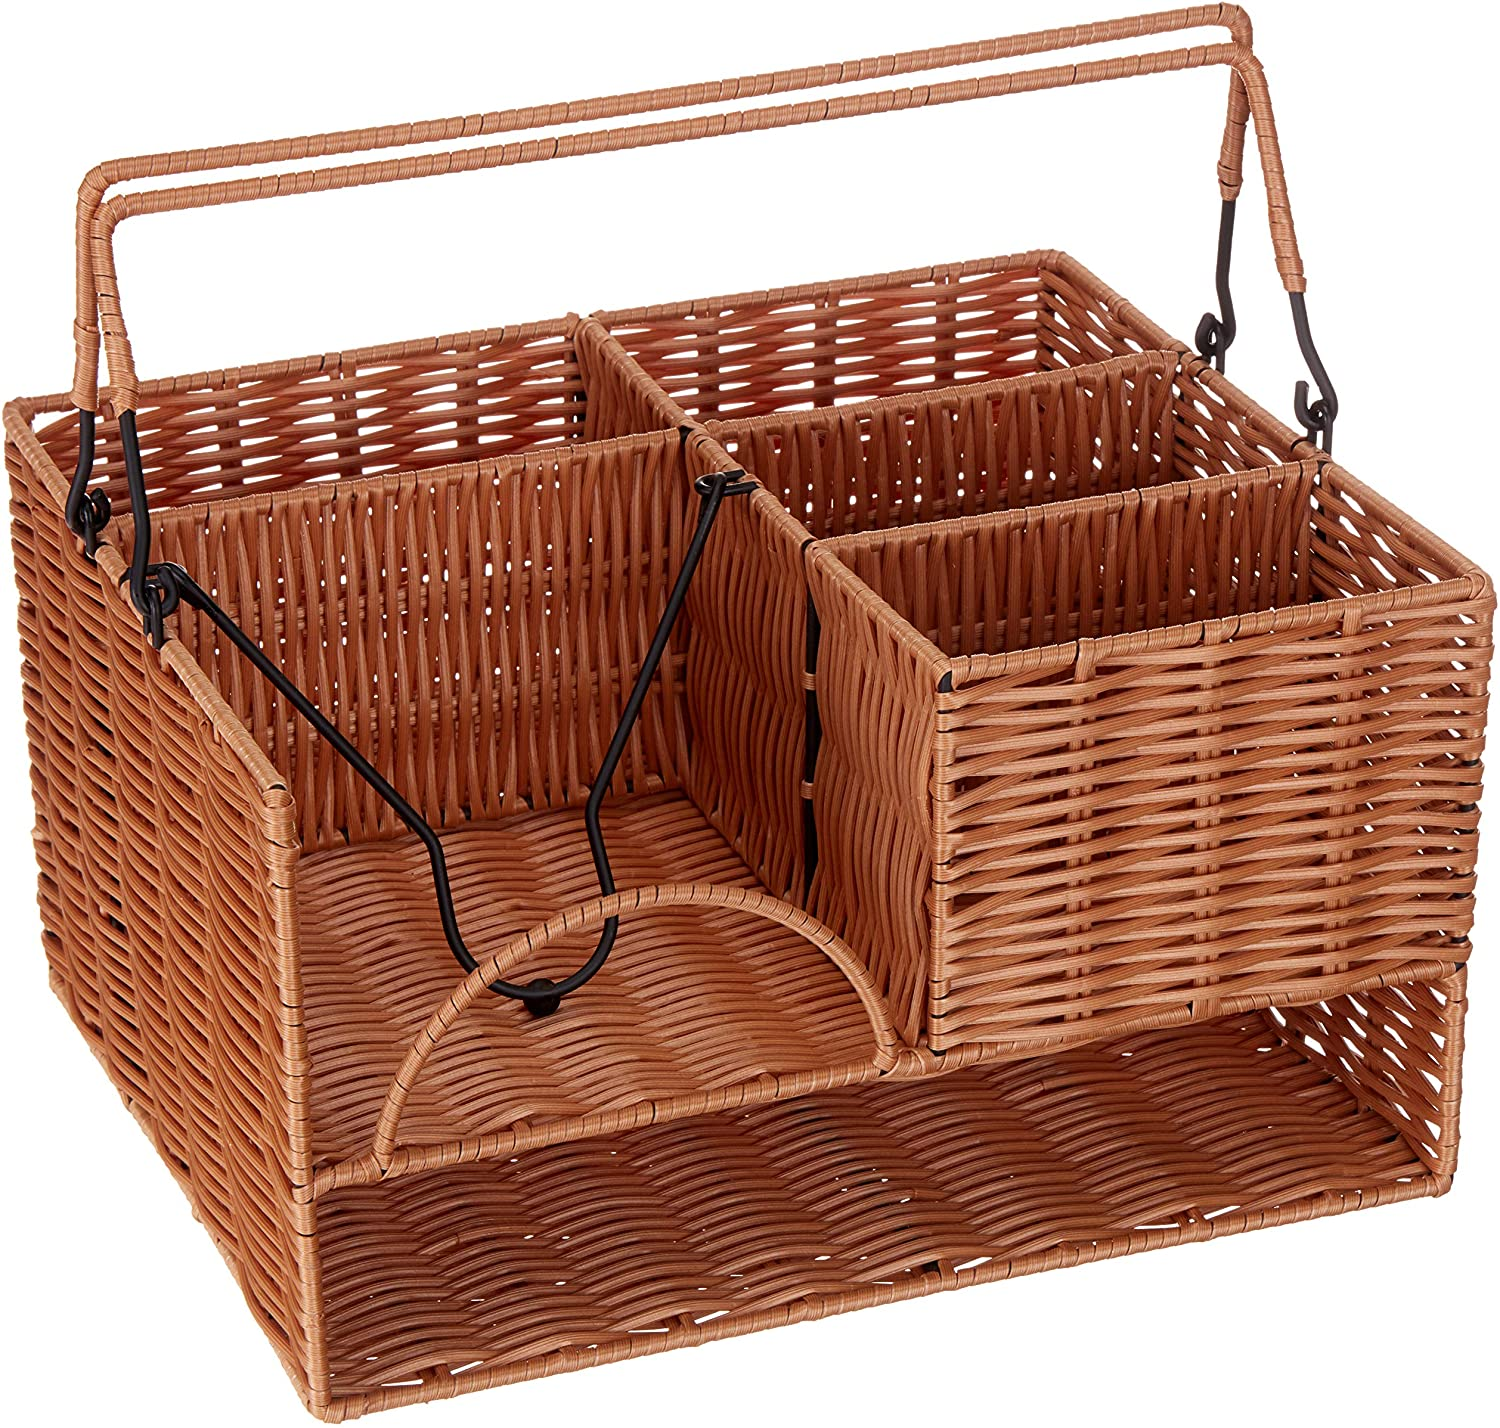 "KOVOT Poly-Wicker Tabletop Cutlery Organizer | Woven Polypropylene | Measures 13.5"" x 11"" x 7.5"""